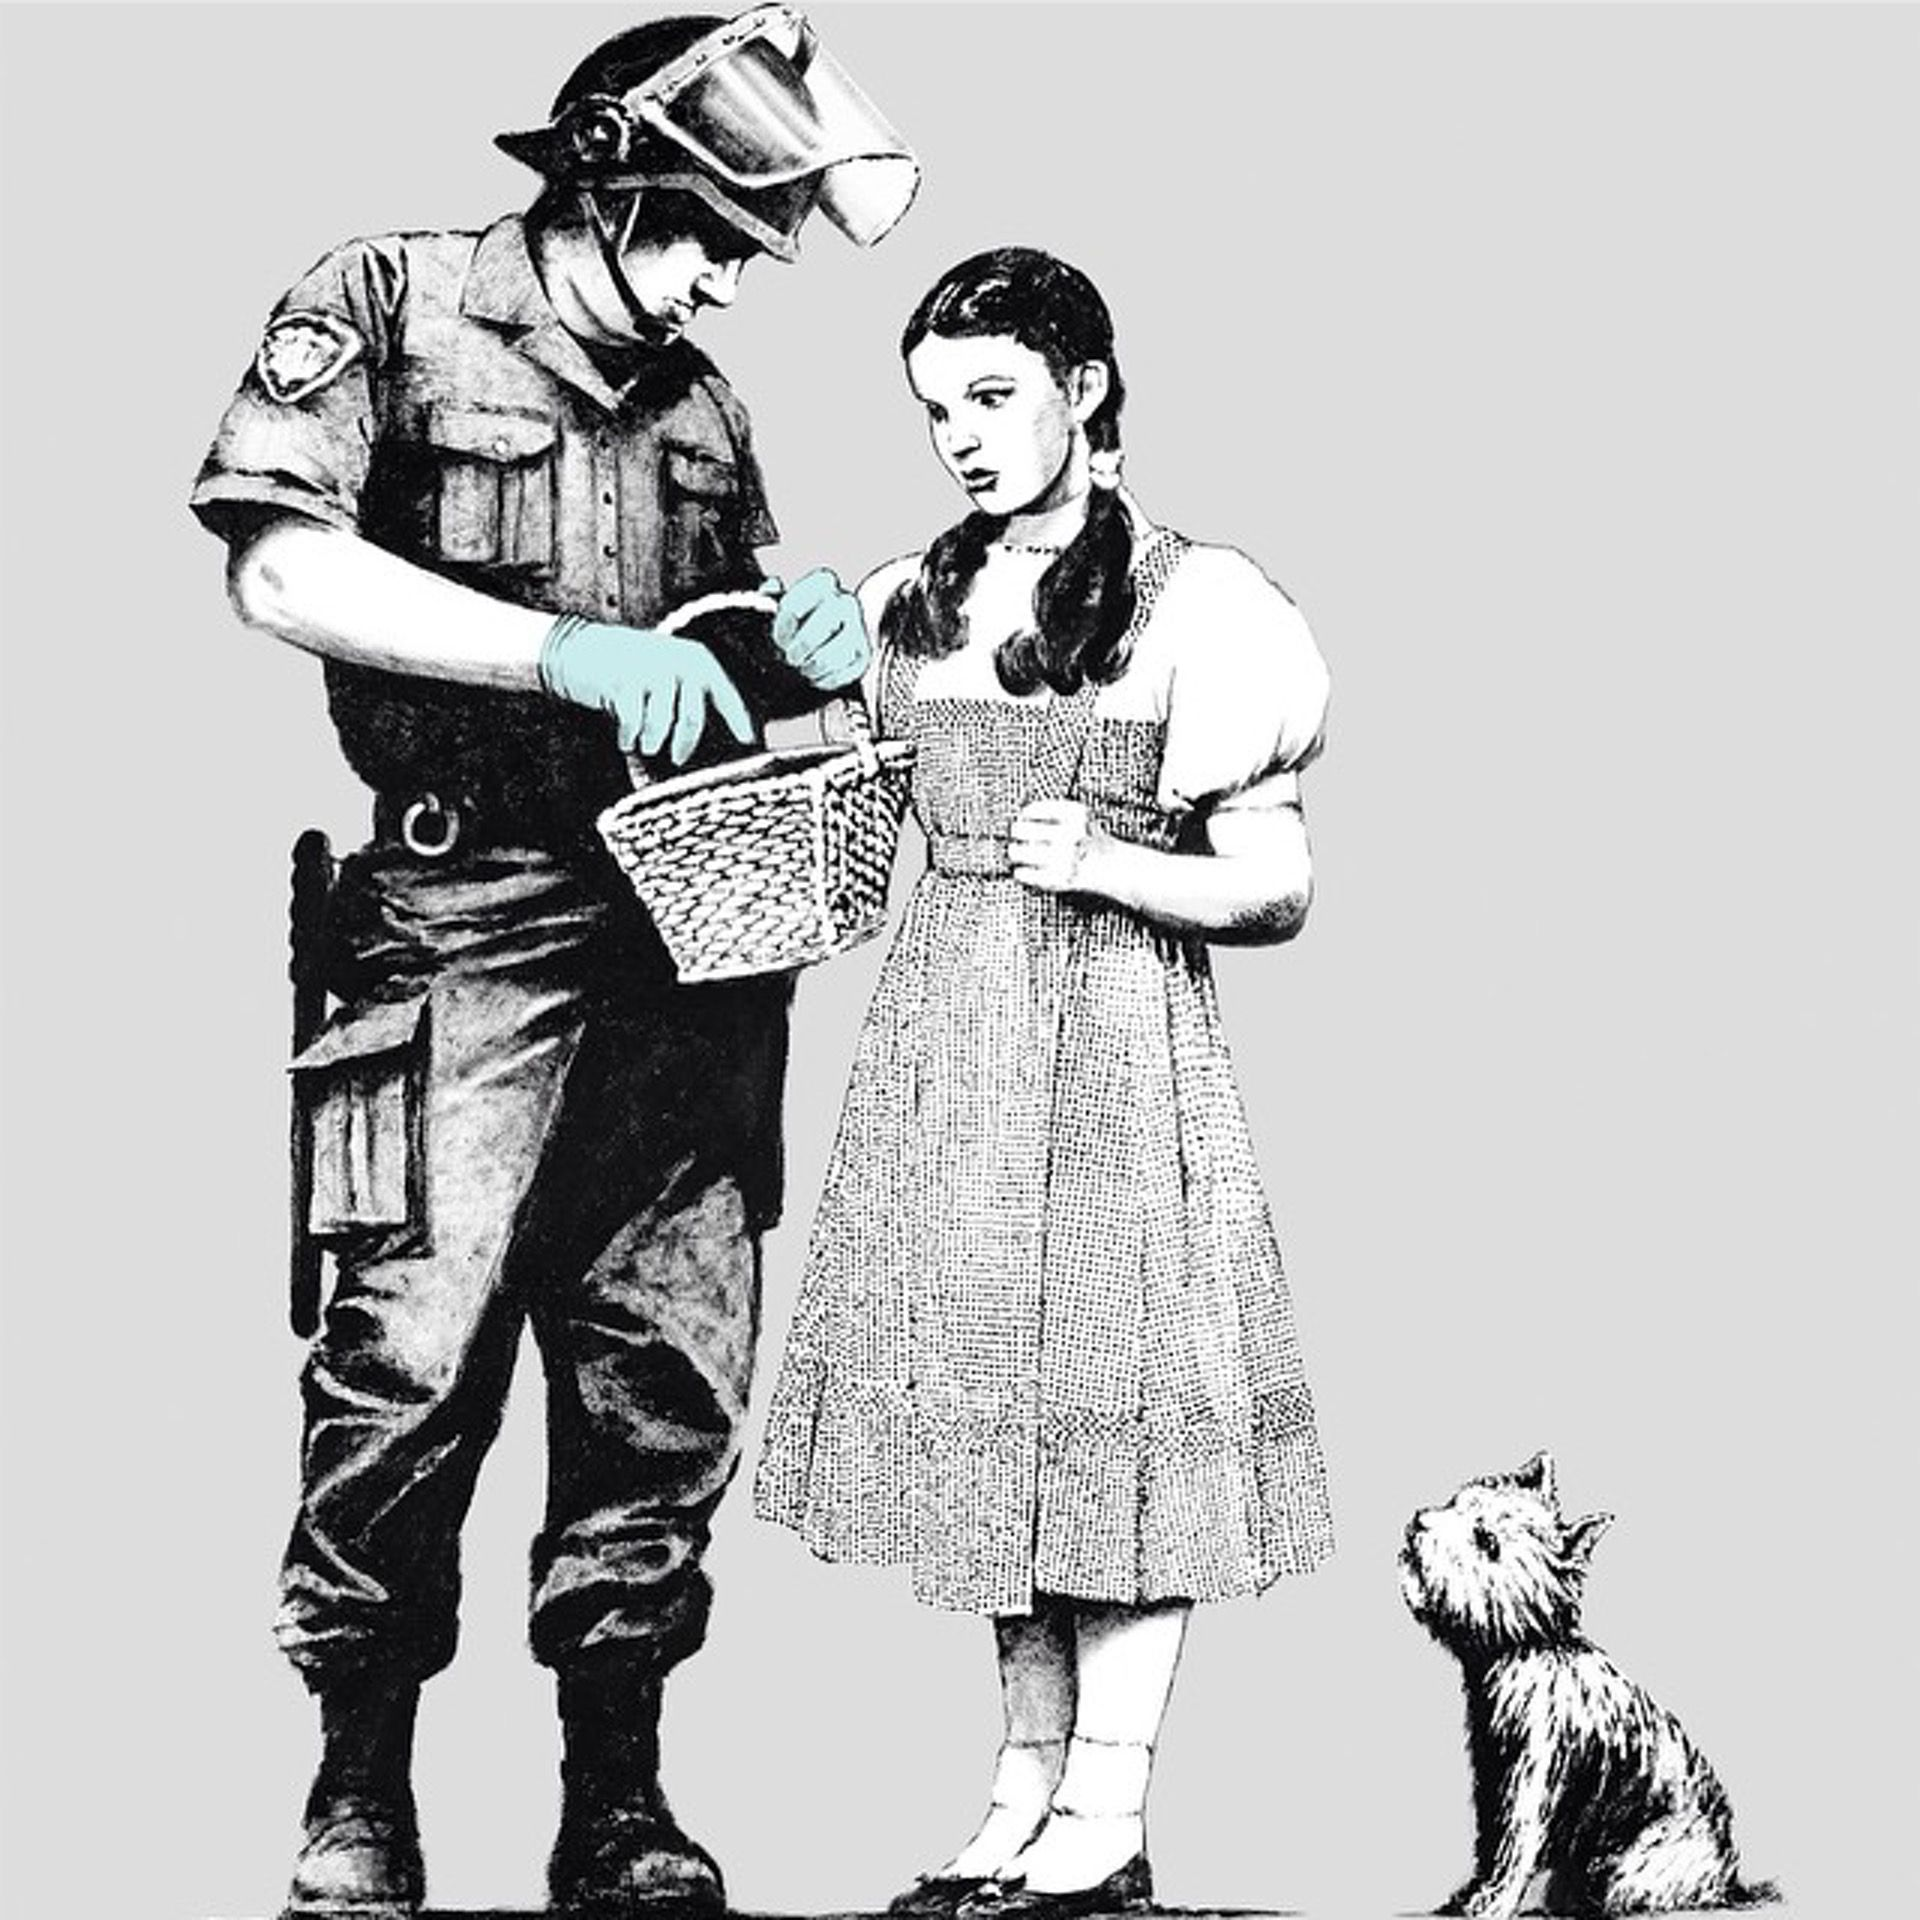 Stop and search (2007) by Banksy - Pako Campo